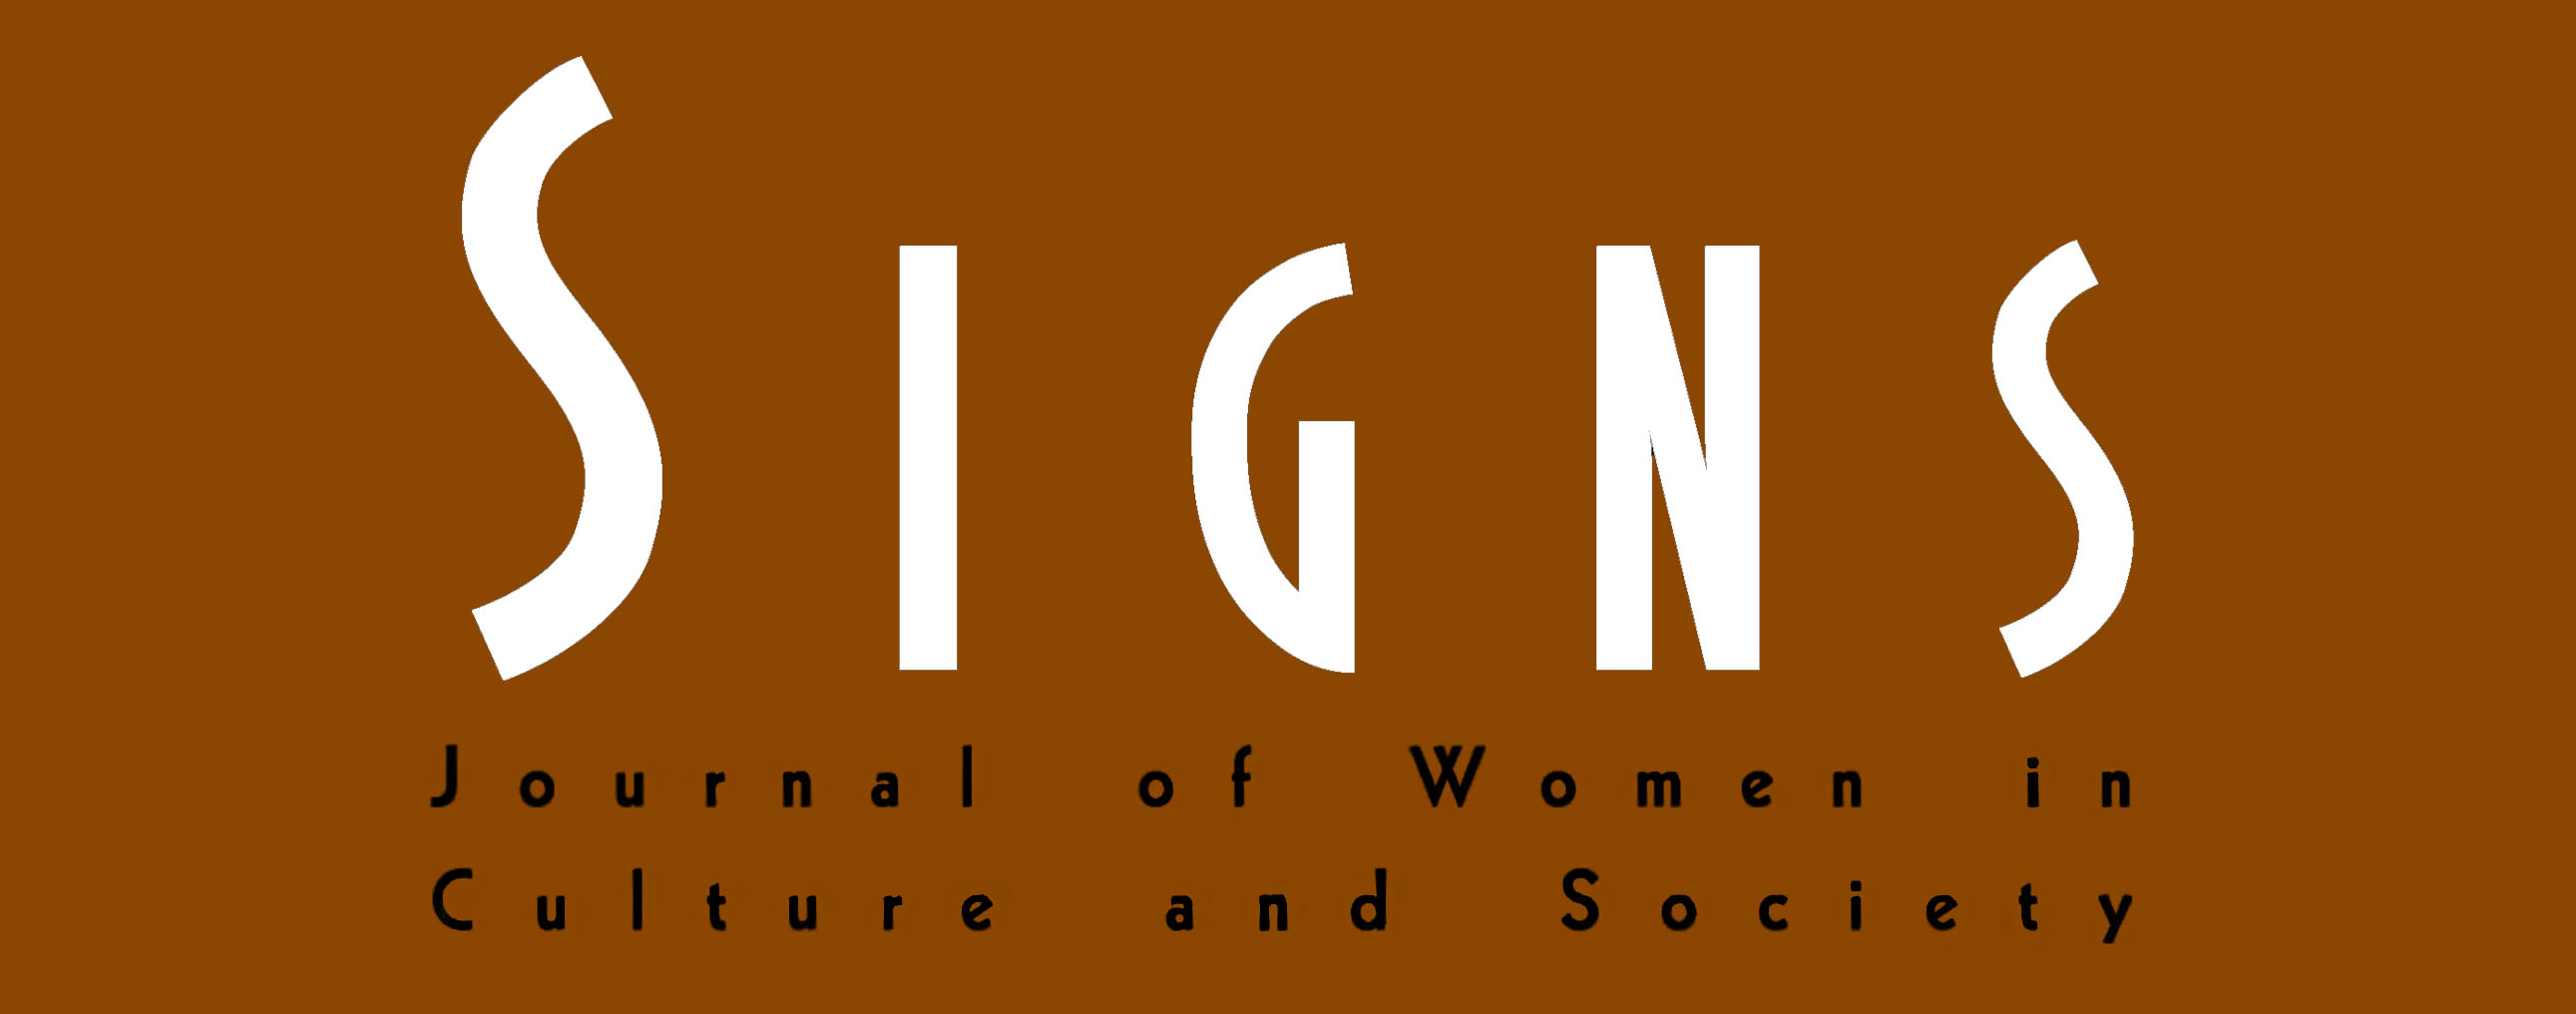 Signs CFP-Pleasure and Danger: Sexual Freedom and Feminism in the Twenty-First Century.